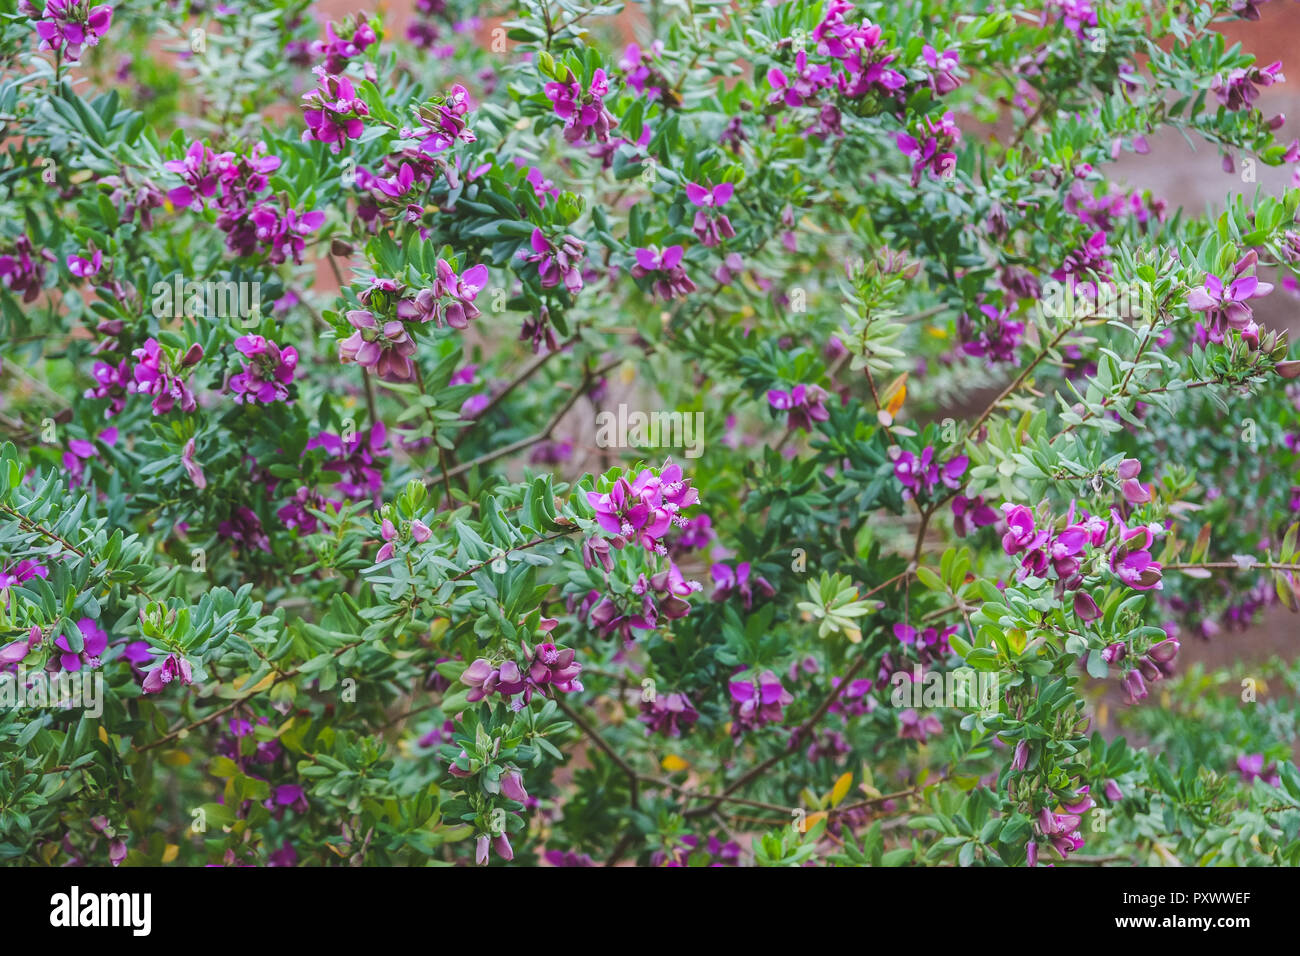 Purple flowers with white pollen and small green leaves. - Stock Image